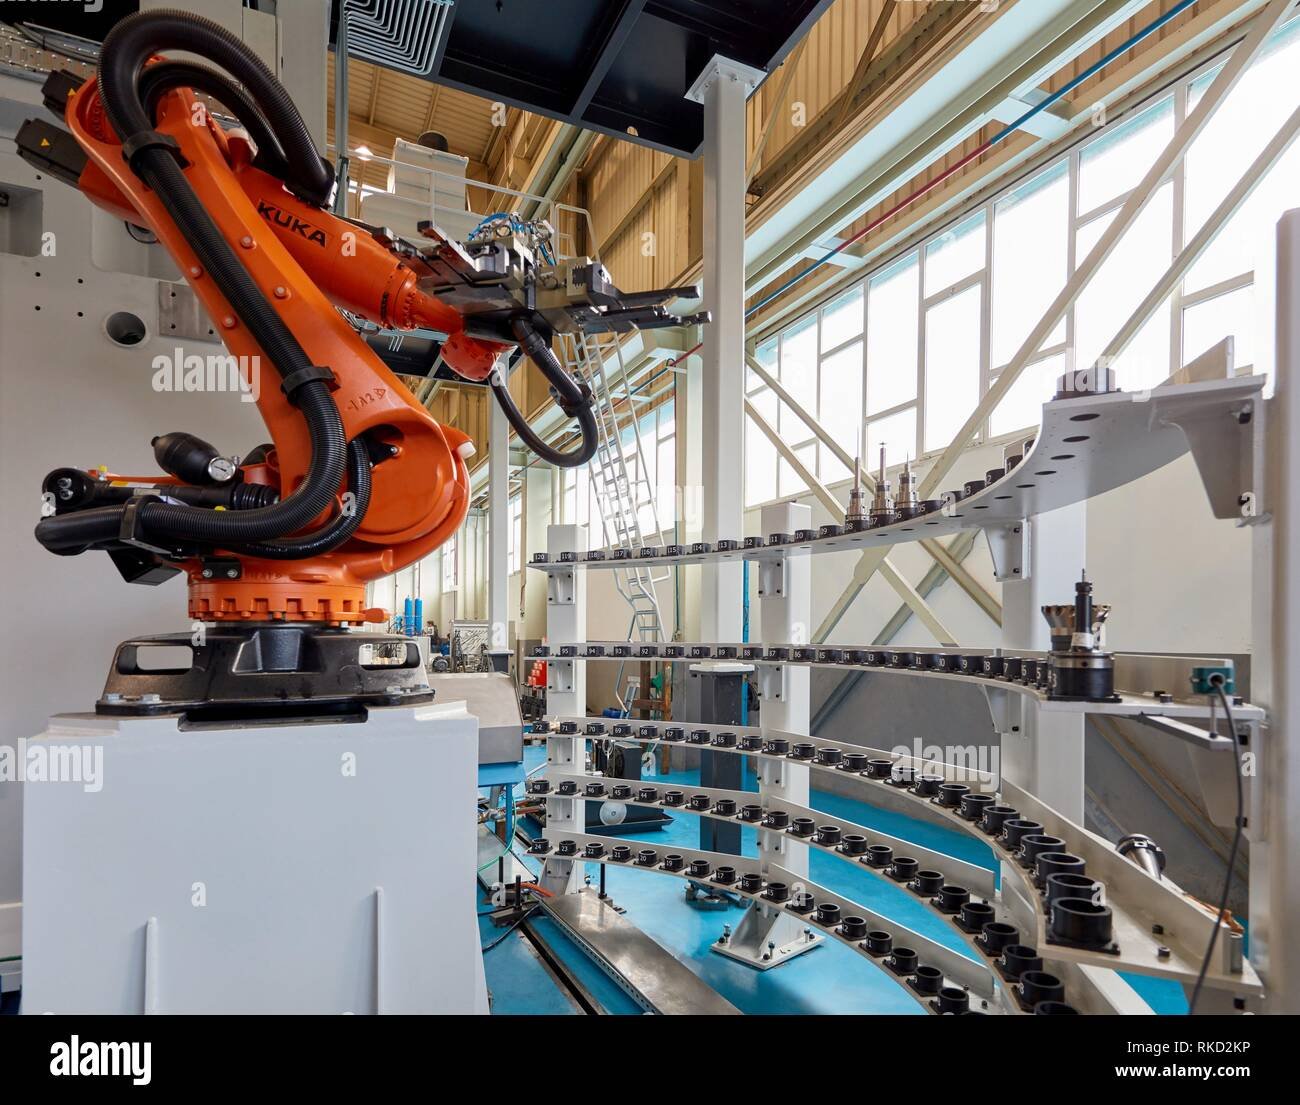 Robot tool changer, Machining Center, CNC, Design, manufacture and installation of machine tools, Gipuzkoa, Basque Country, Spain, Europe - Stock Image